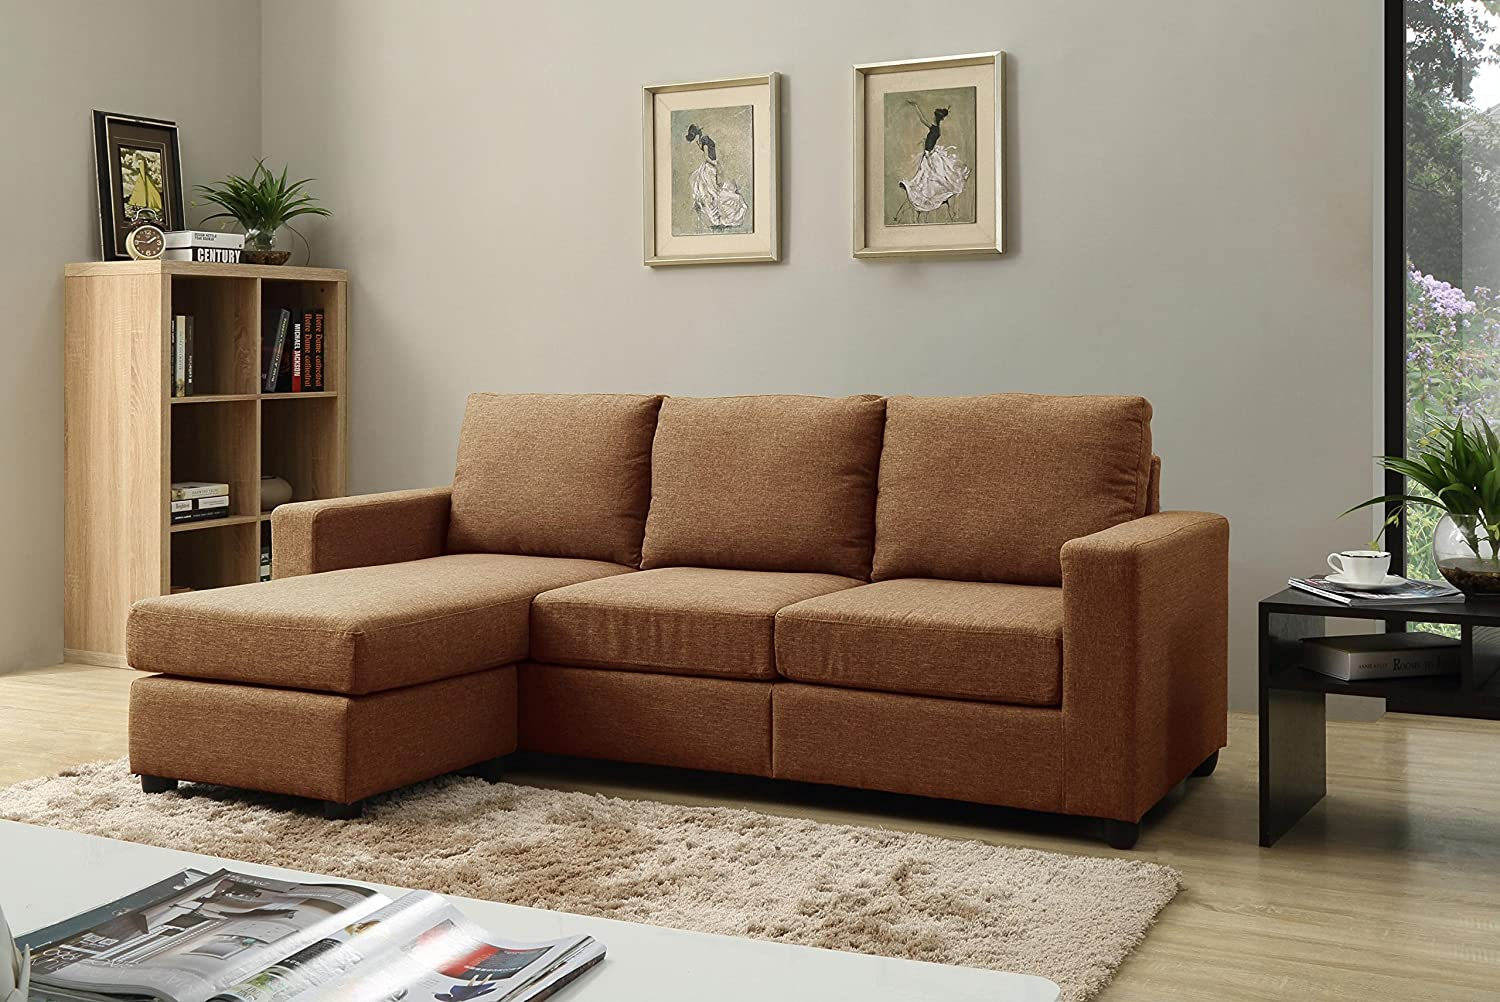 leather light knack modern for brown living a chaise stylish sofas microfiber furniture looking sectional room with grey